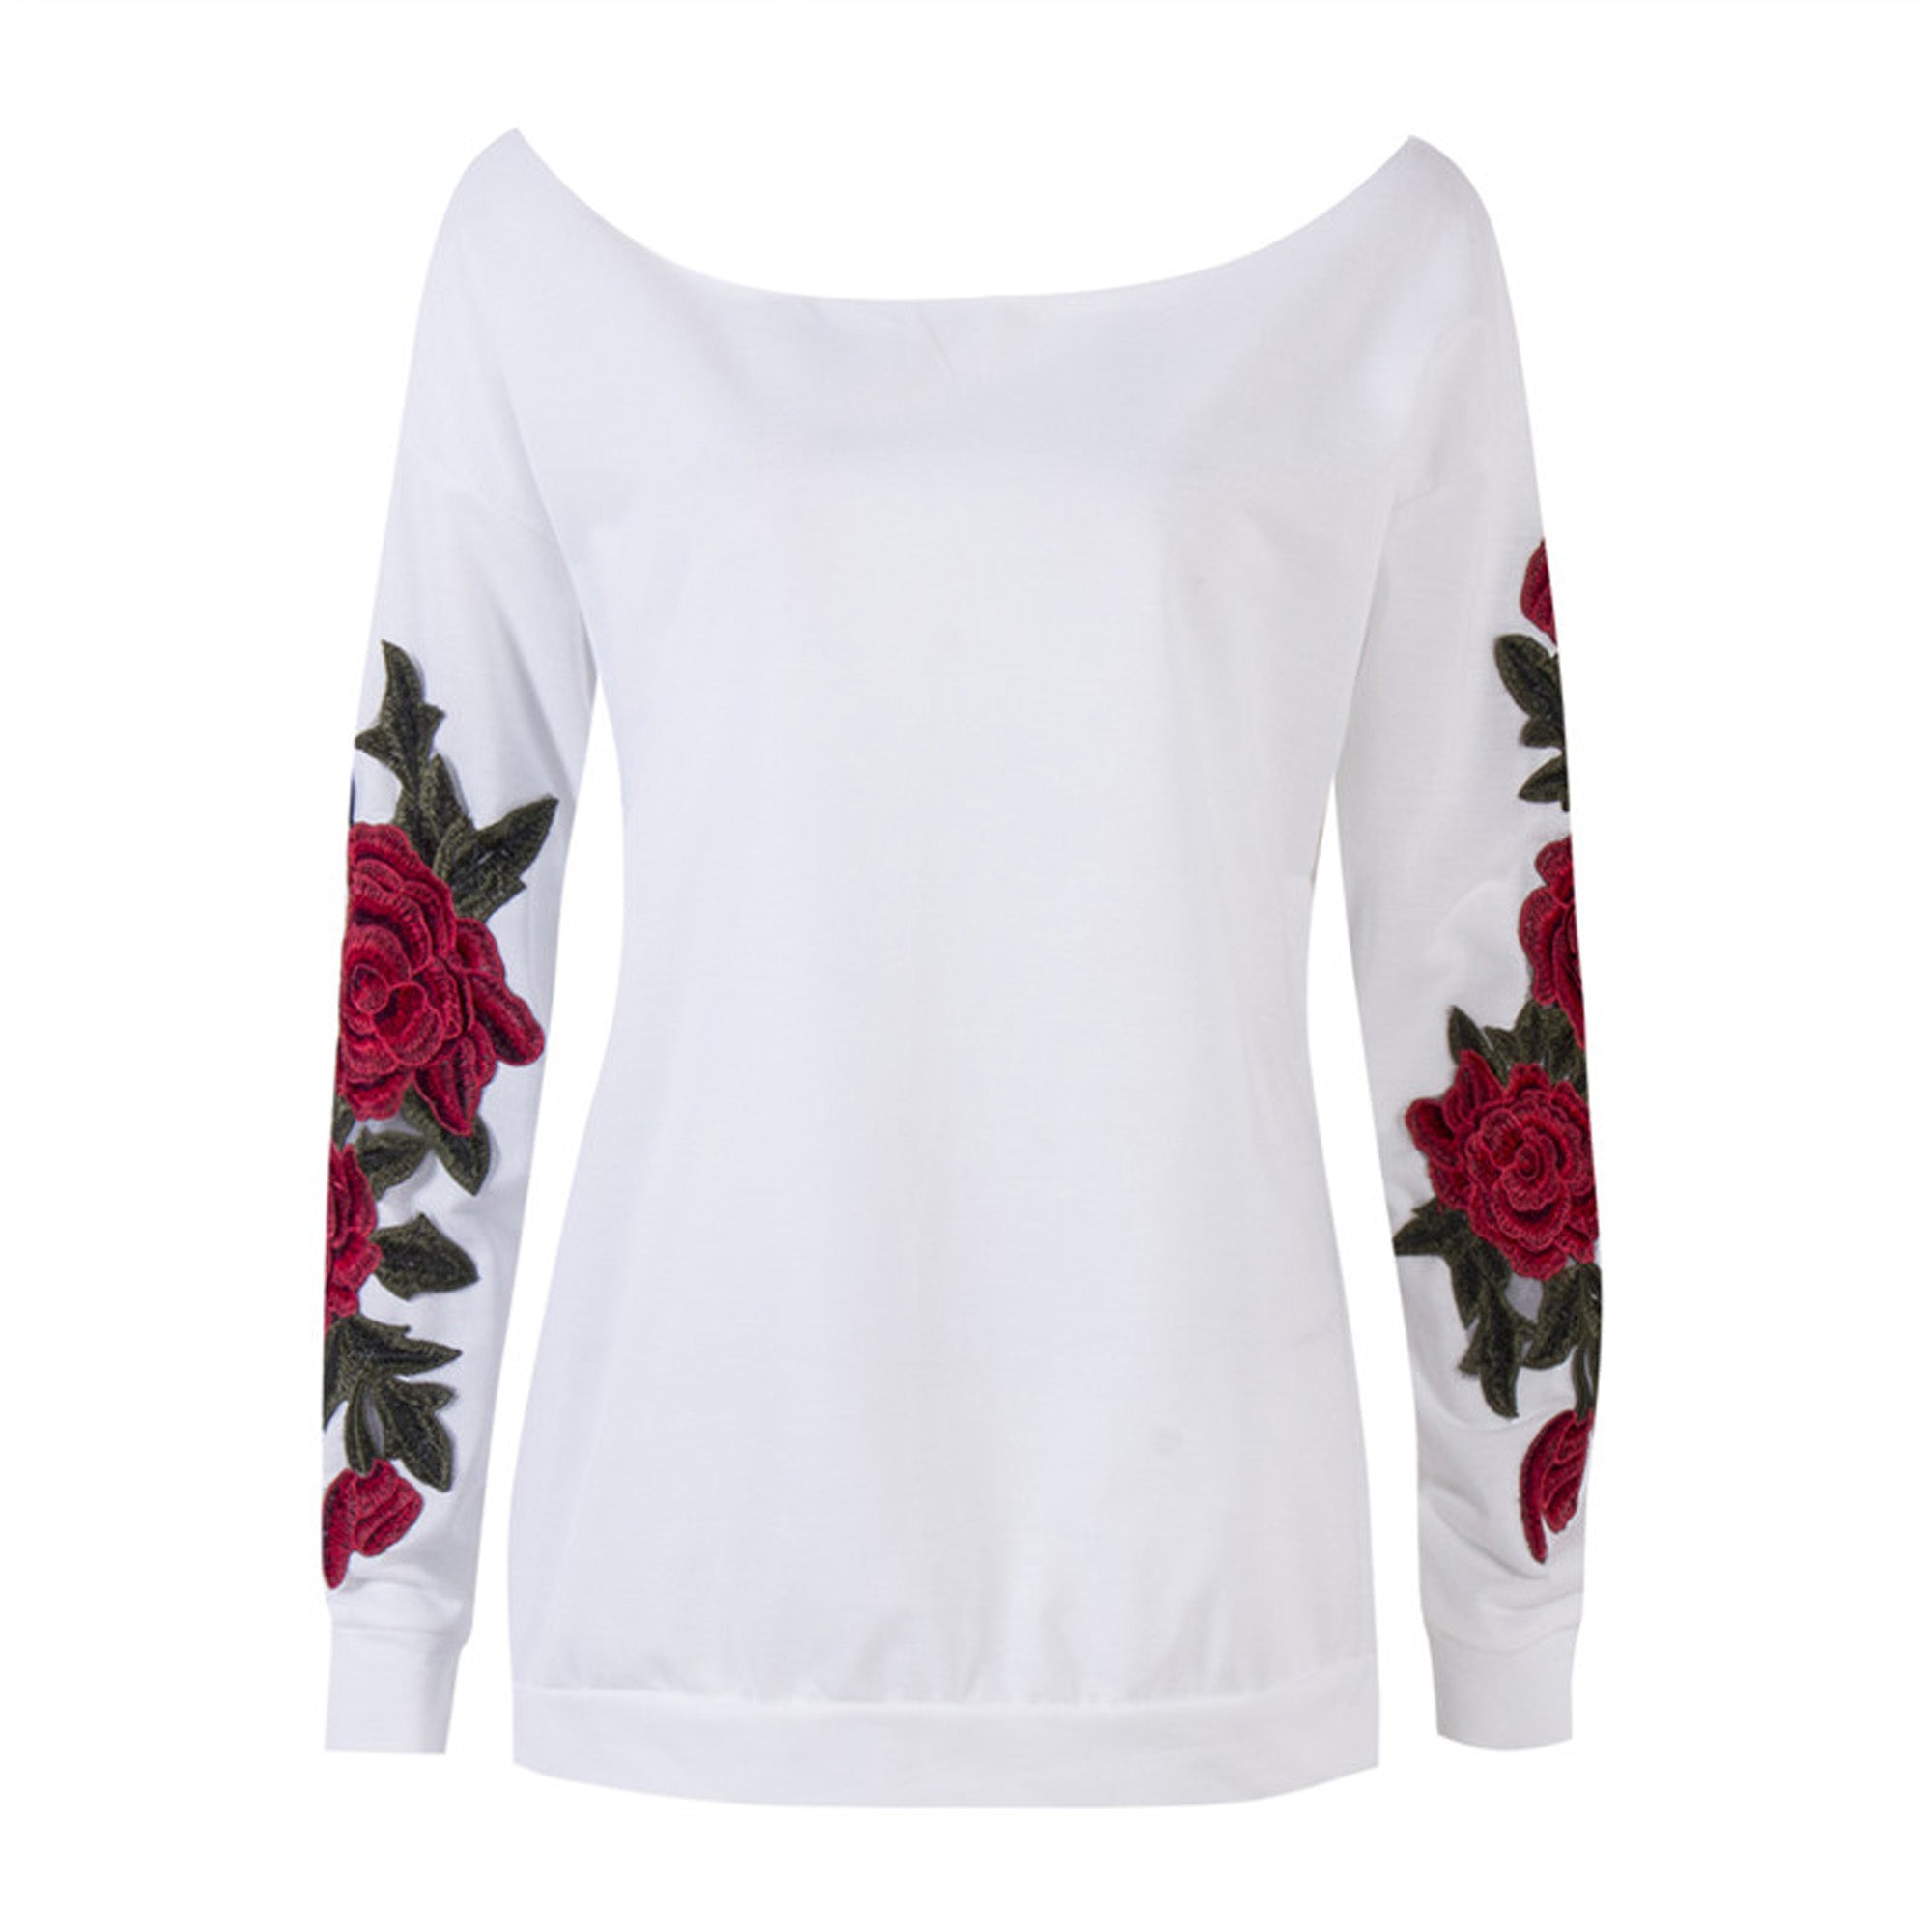 b1337e91a09 ... Cute Casual Back to School Outfit Ideas for Teens 2018 - Rose  Embroidery Off the Shoulder ...